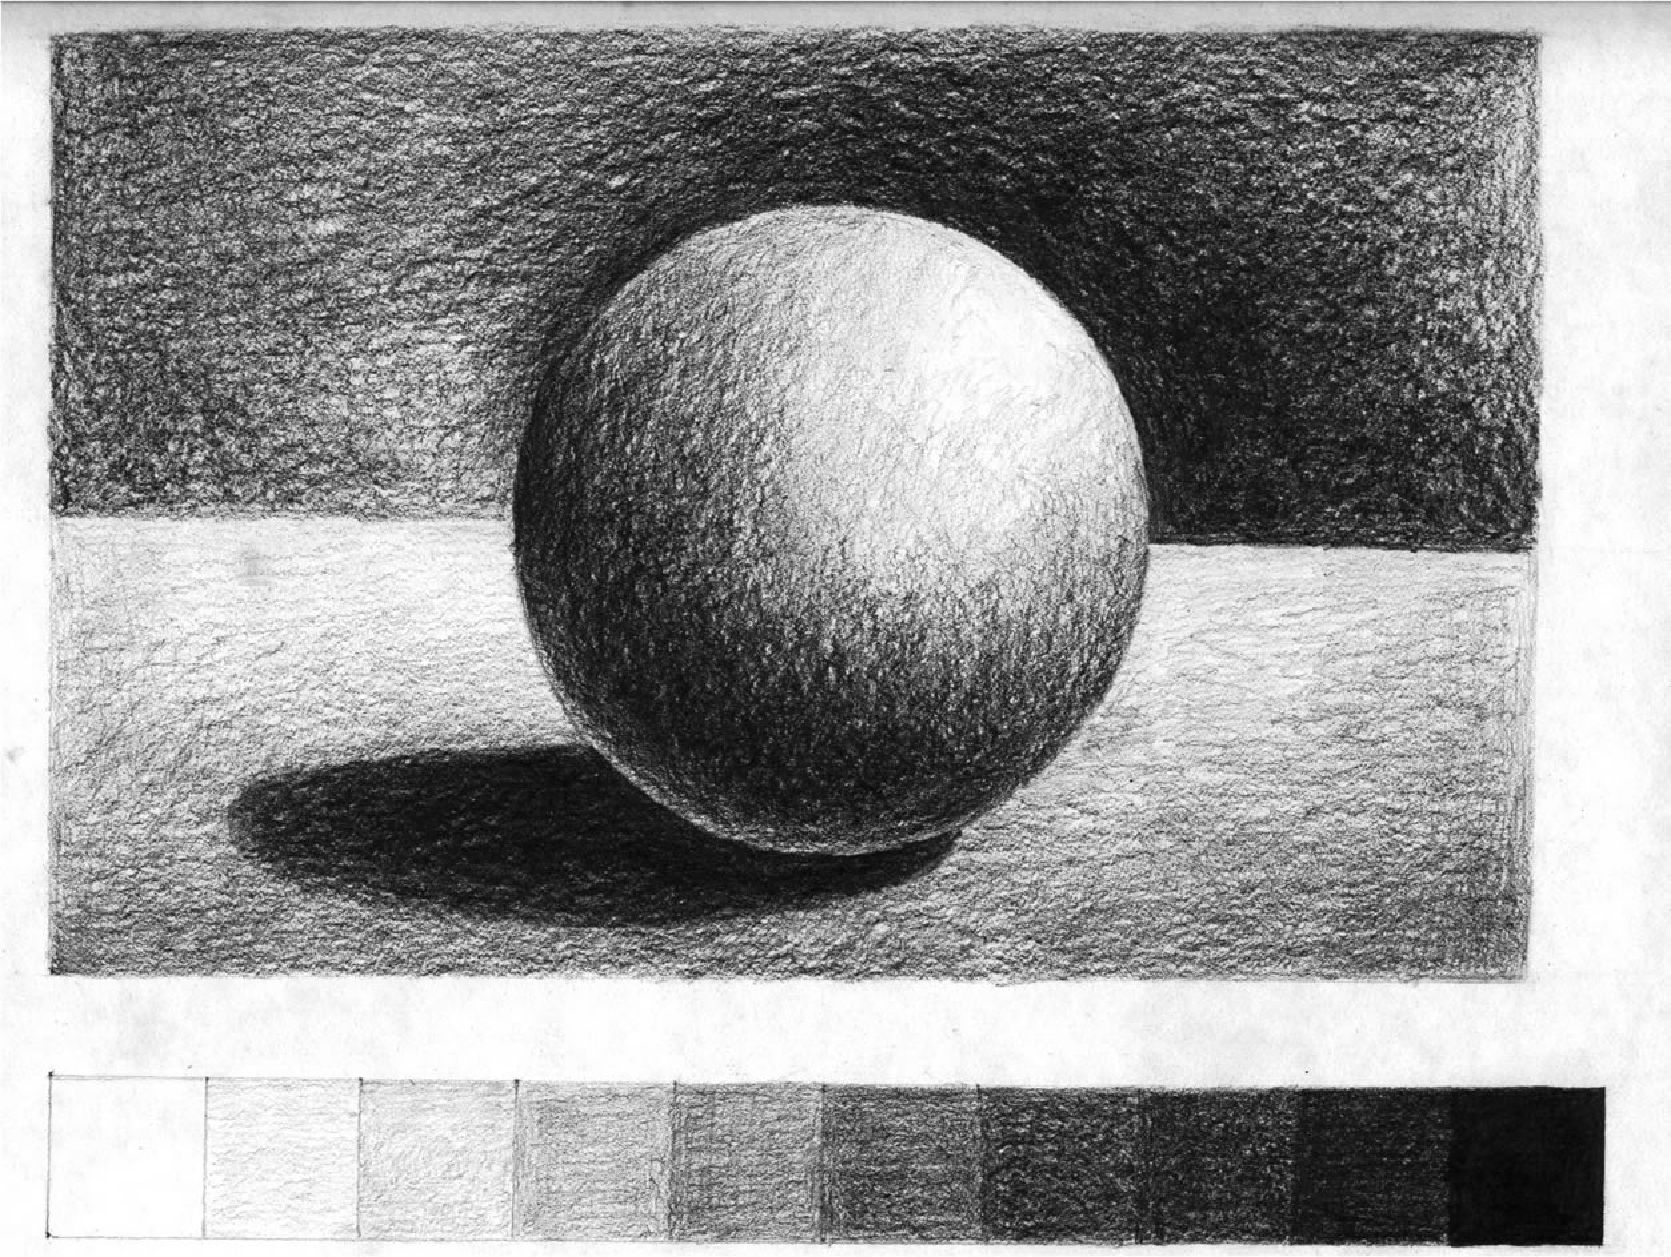 Drawn spheric tonal And Teach for Beginners Texture